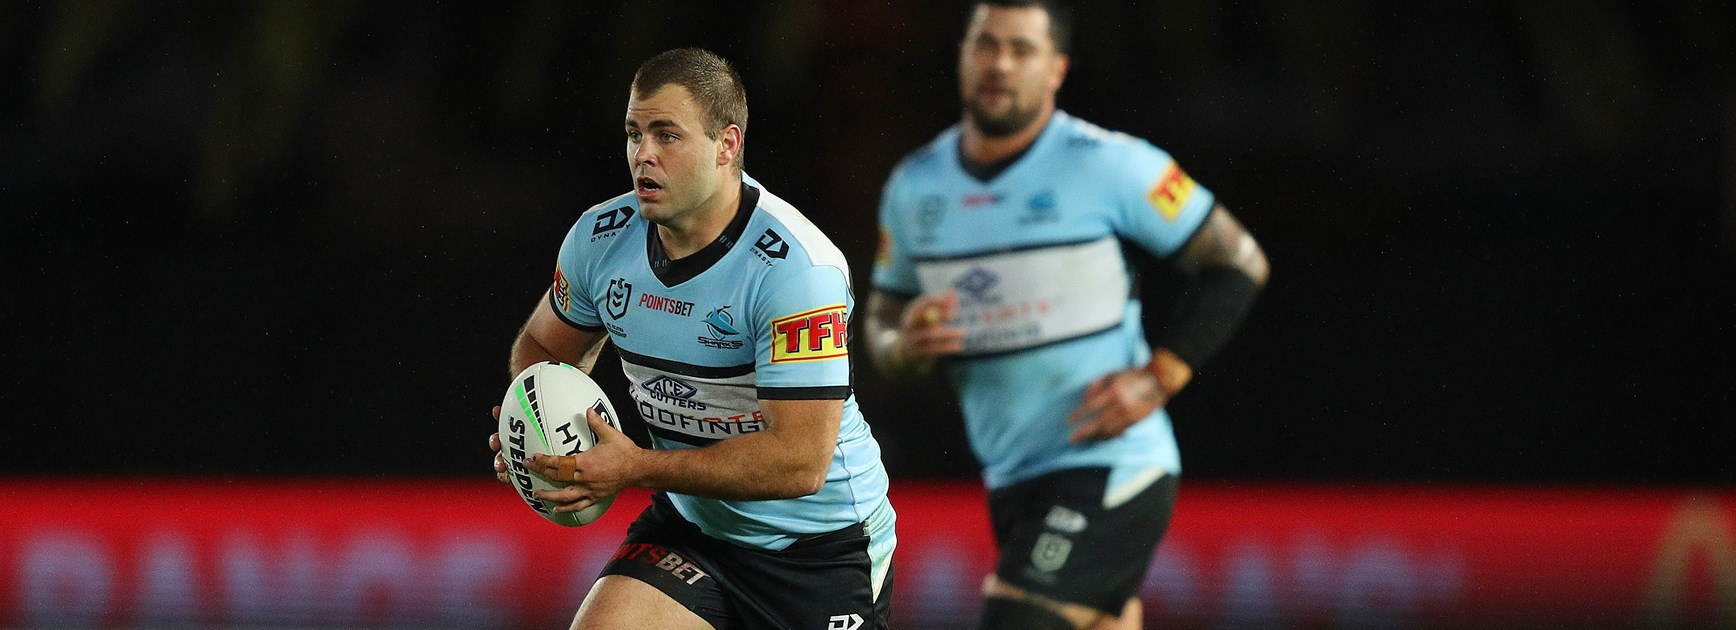 Graham expects upsets to continue and backs Sharks to spring one